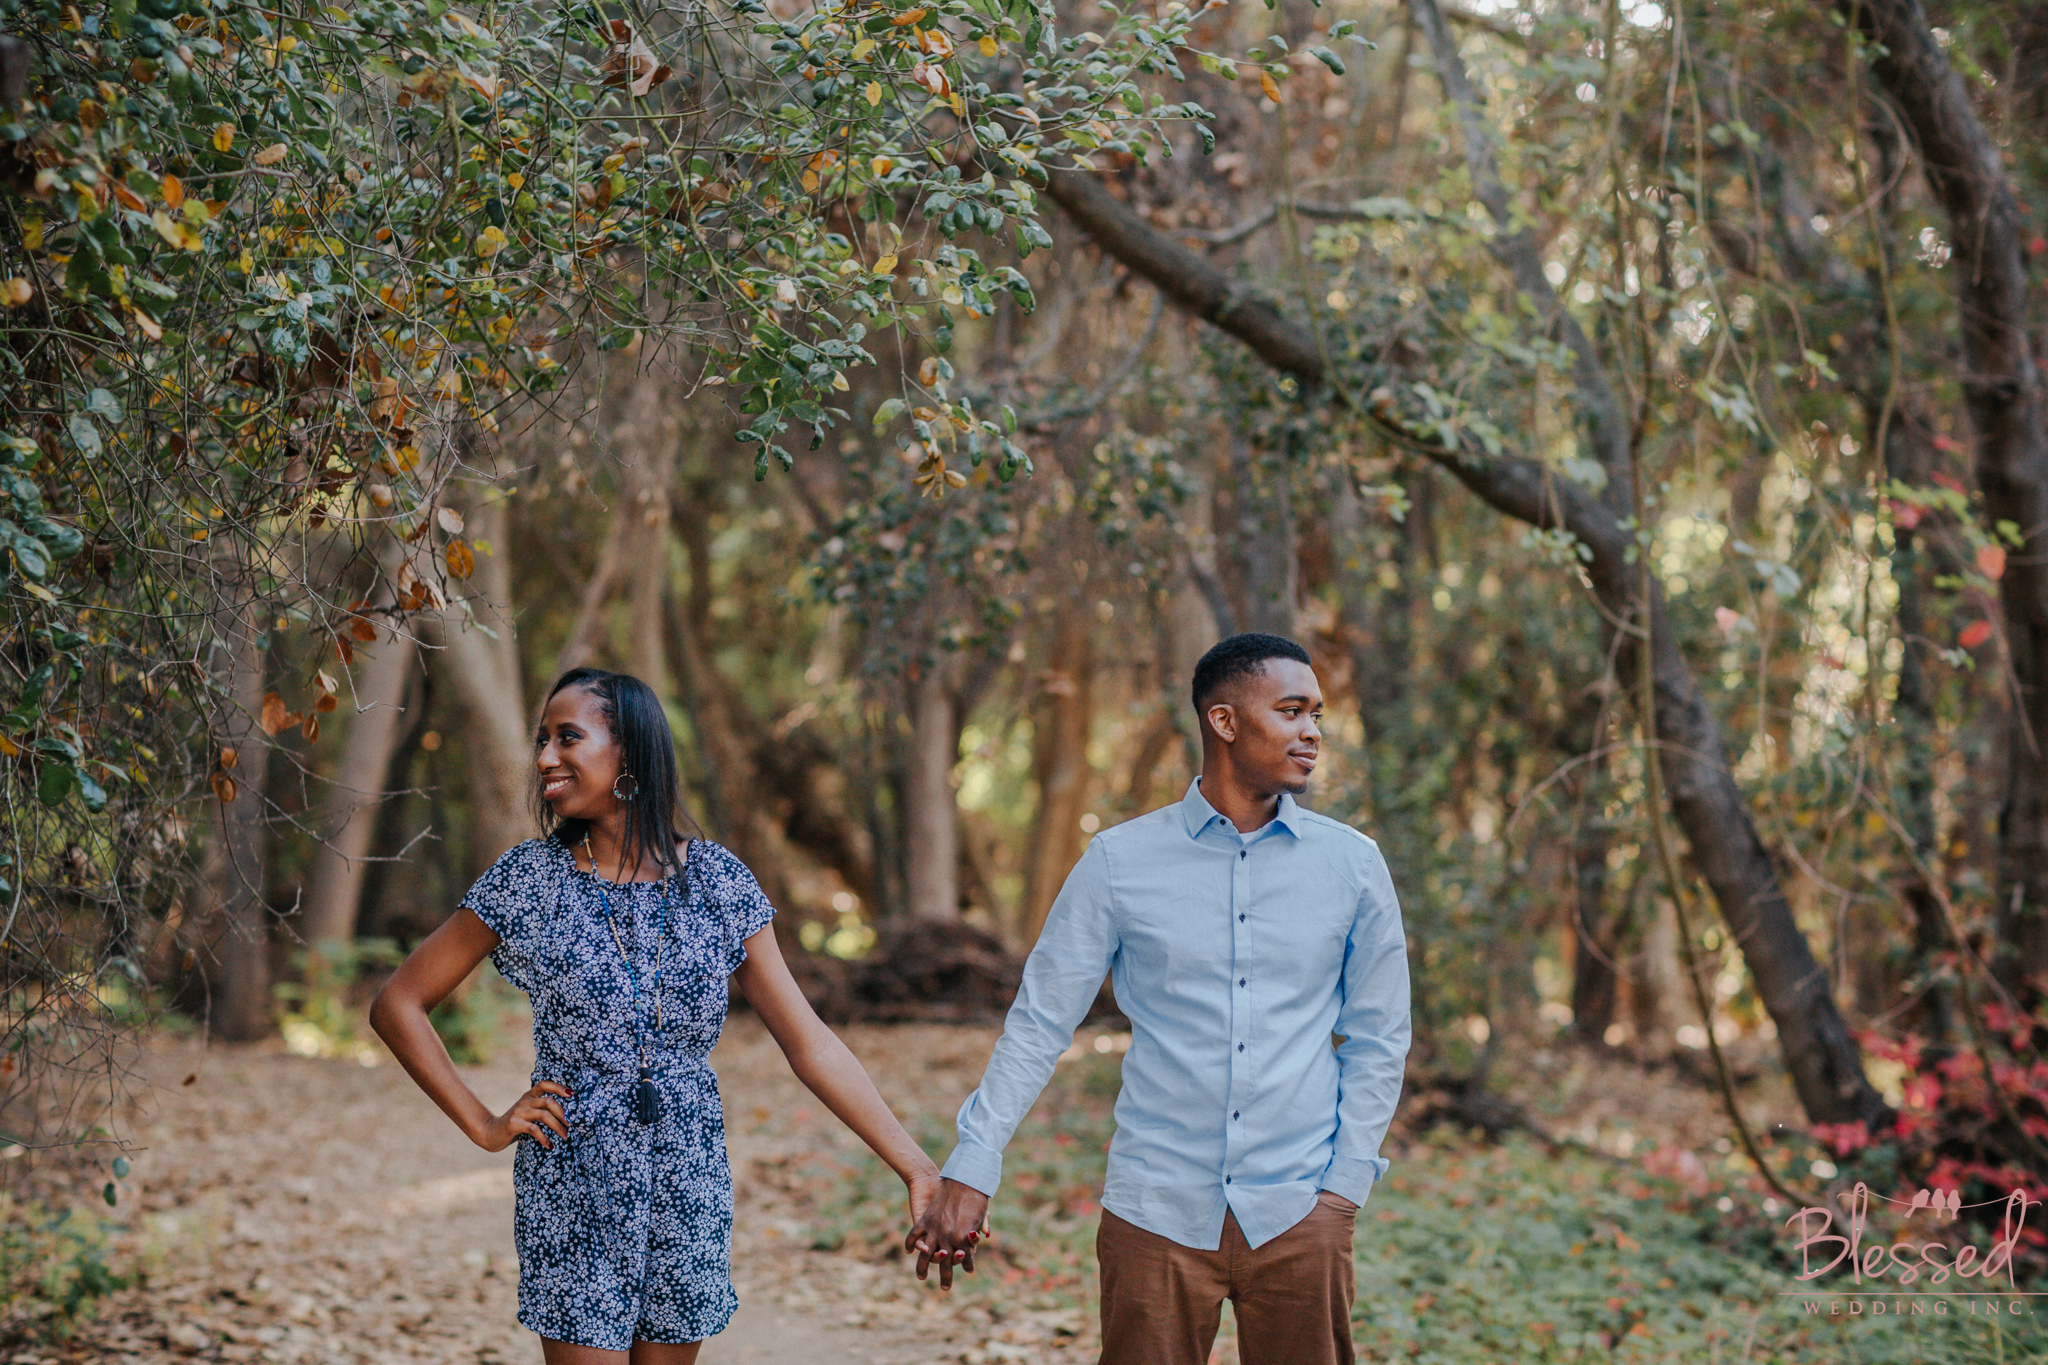 Marian Bear Park Engagement Session by Blessed Wedding Photography  (6 of 25).jpg